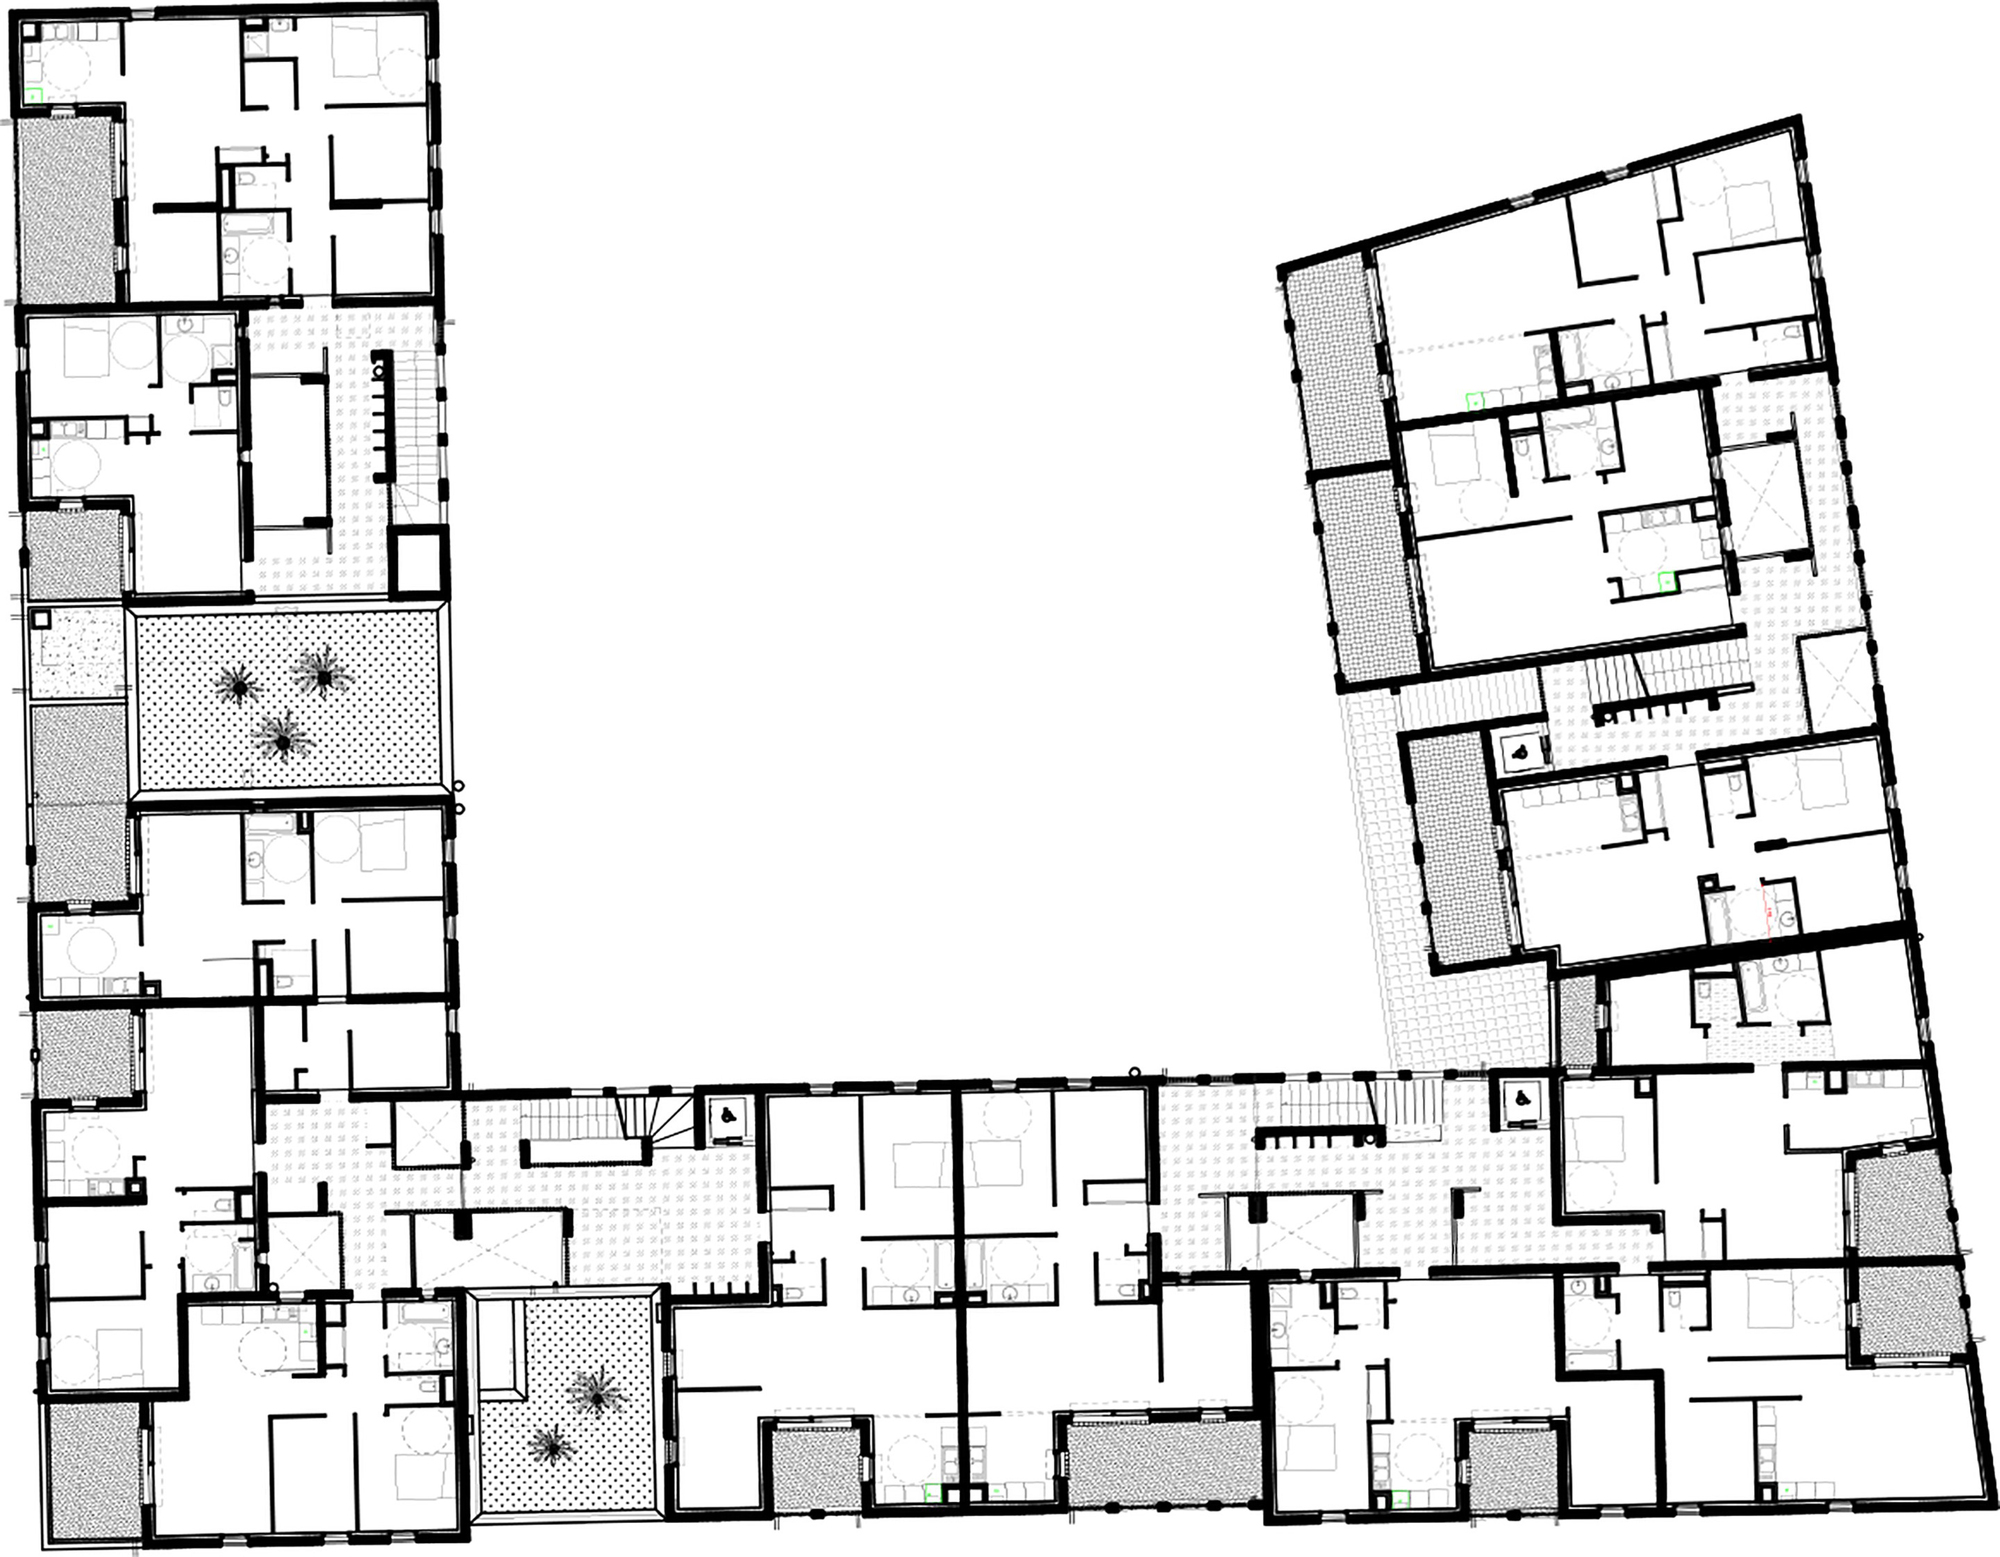 Case Study House Plans Gallery Of 58 Social Housing In Antibes Atelier Pirollet